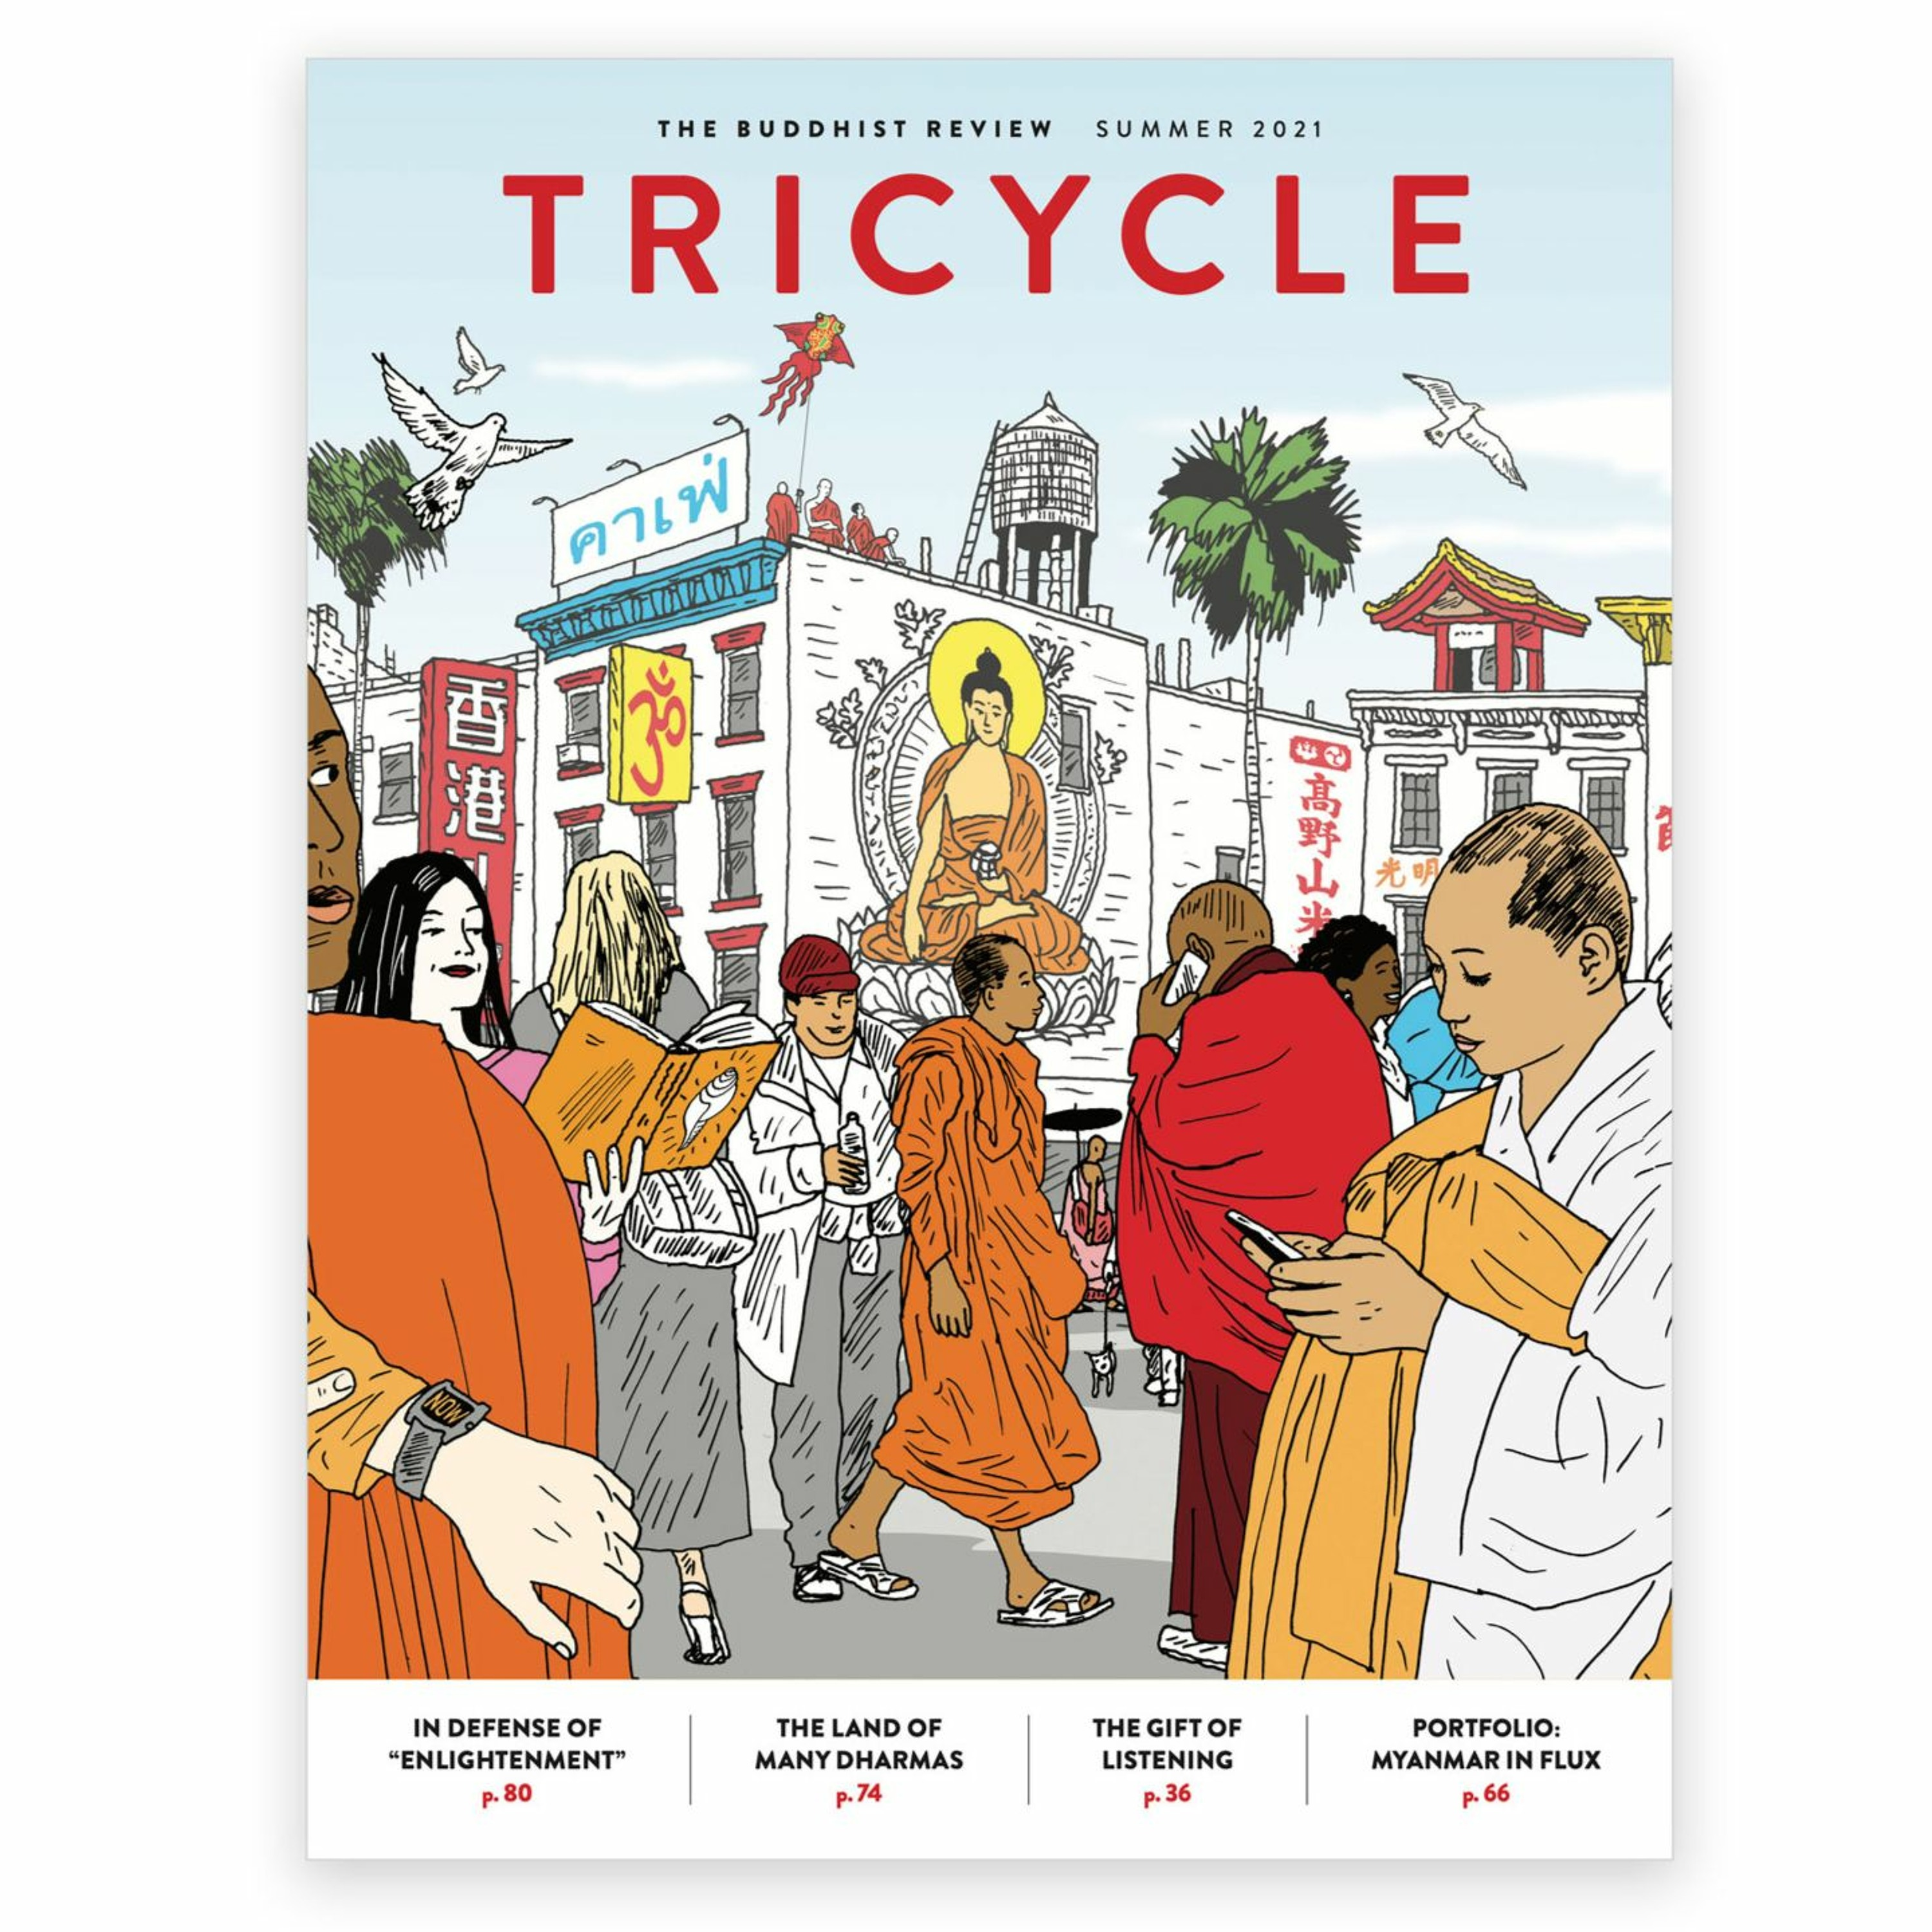 Inside Tricycle's Summer 2021 Issue